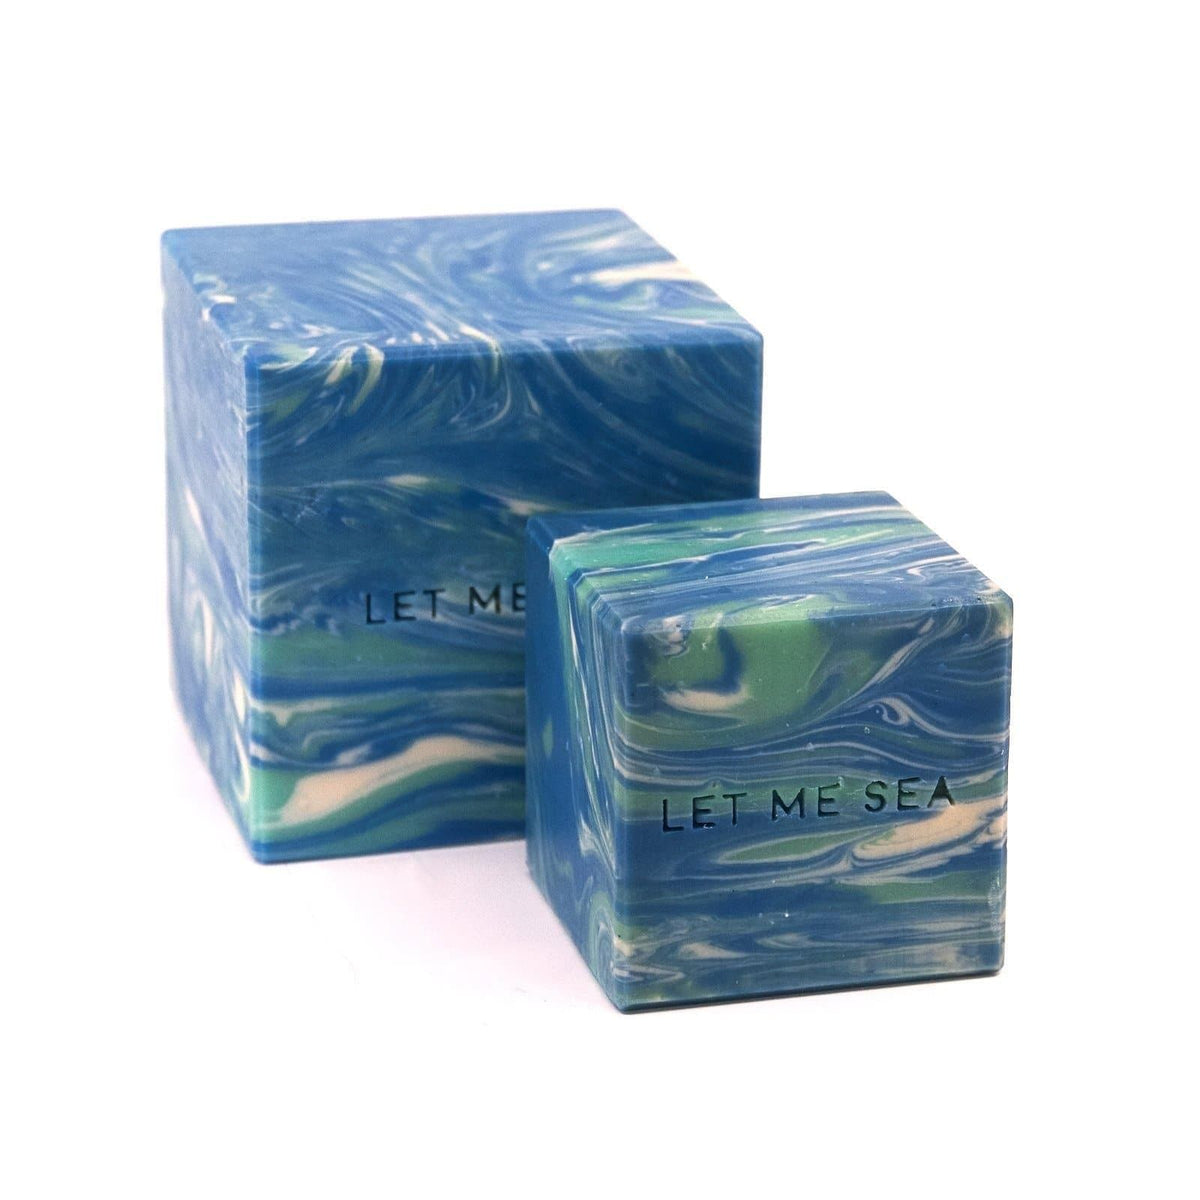 Let Me Sea - Wheatgrass & Citrus Bar Soap-Soap Bar-MOTE-120g-Totem Store